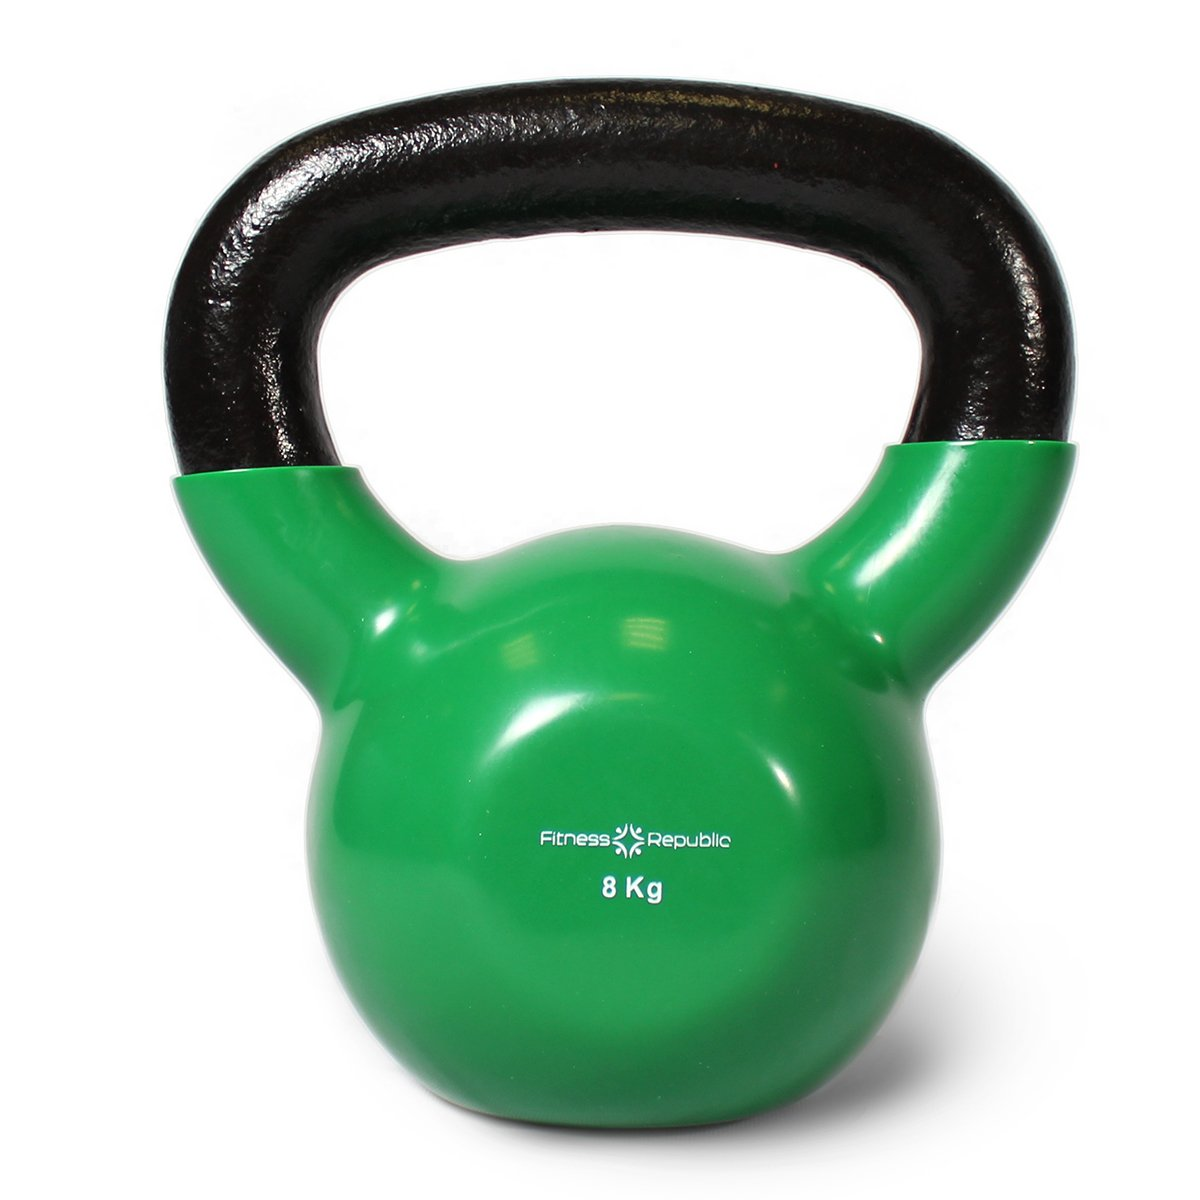 Deals of the Day Kettlebell – Hot Kettlebell Deals in Fitness – Amazon Best Selling Kettlebell Products – Best Kettlebell Set Deal – Top Kettlebell Exercise Deals – Best Selling Products Kettlebell